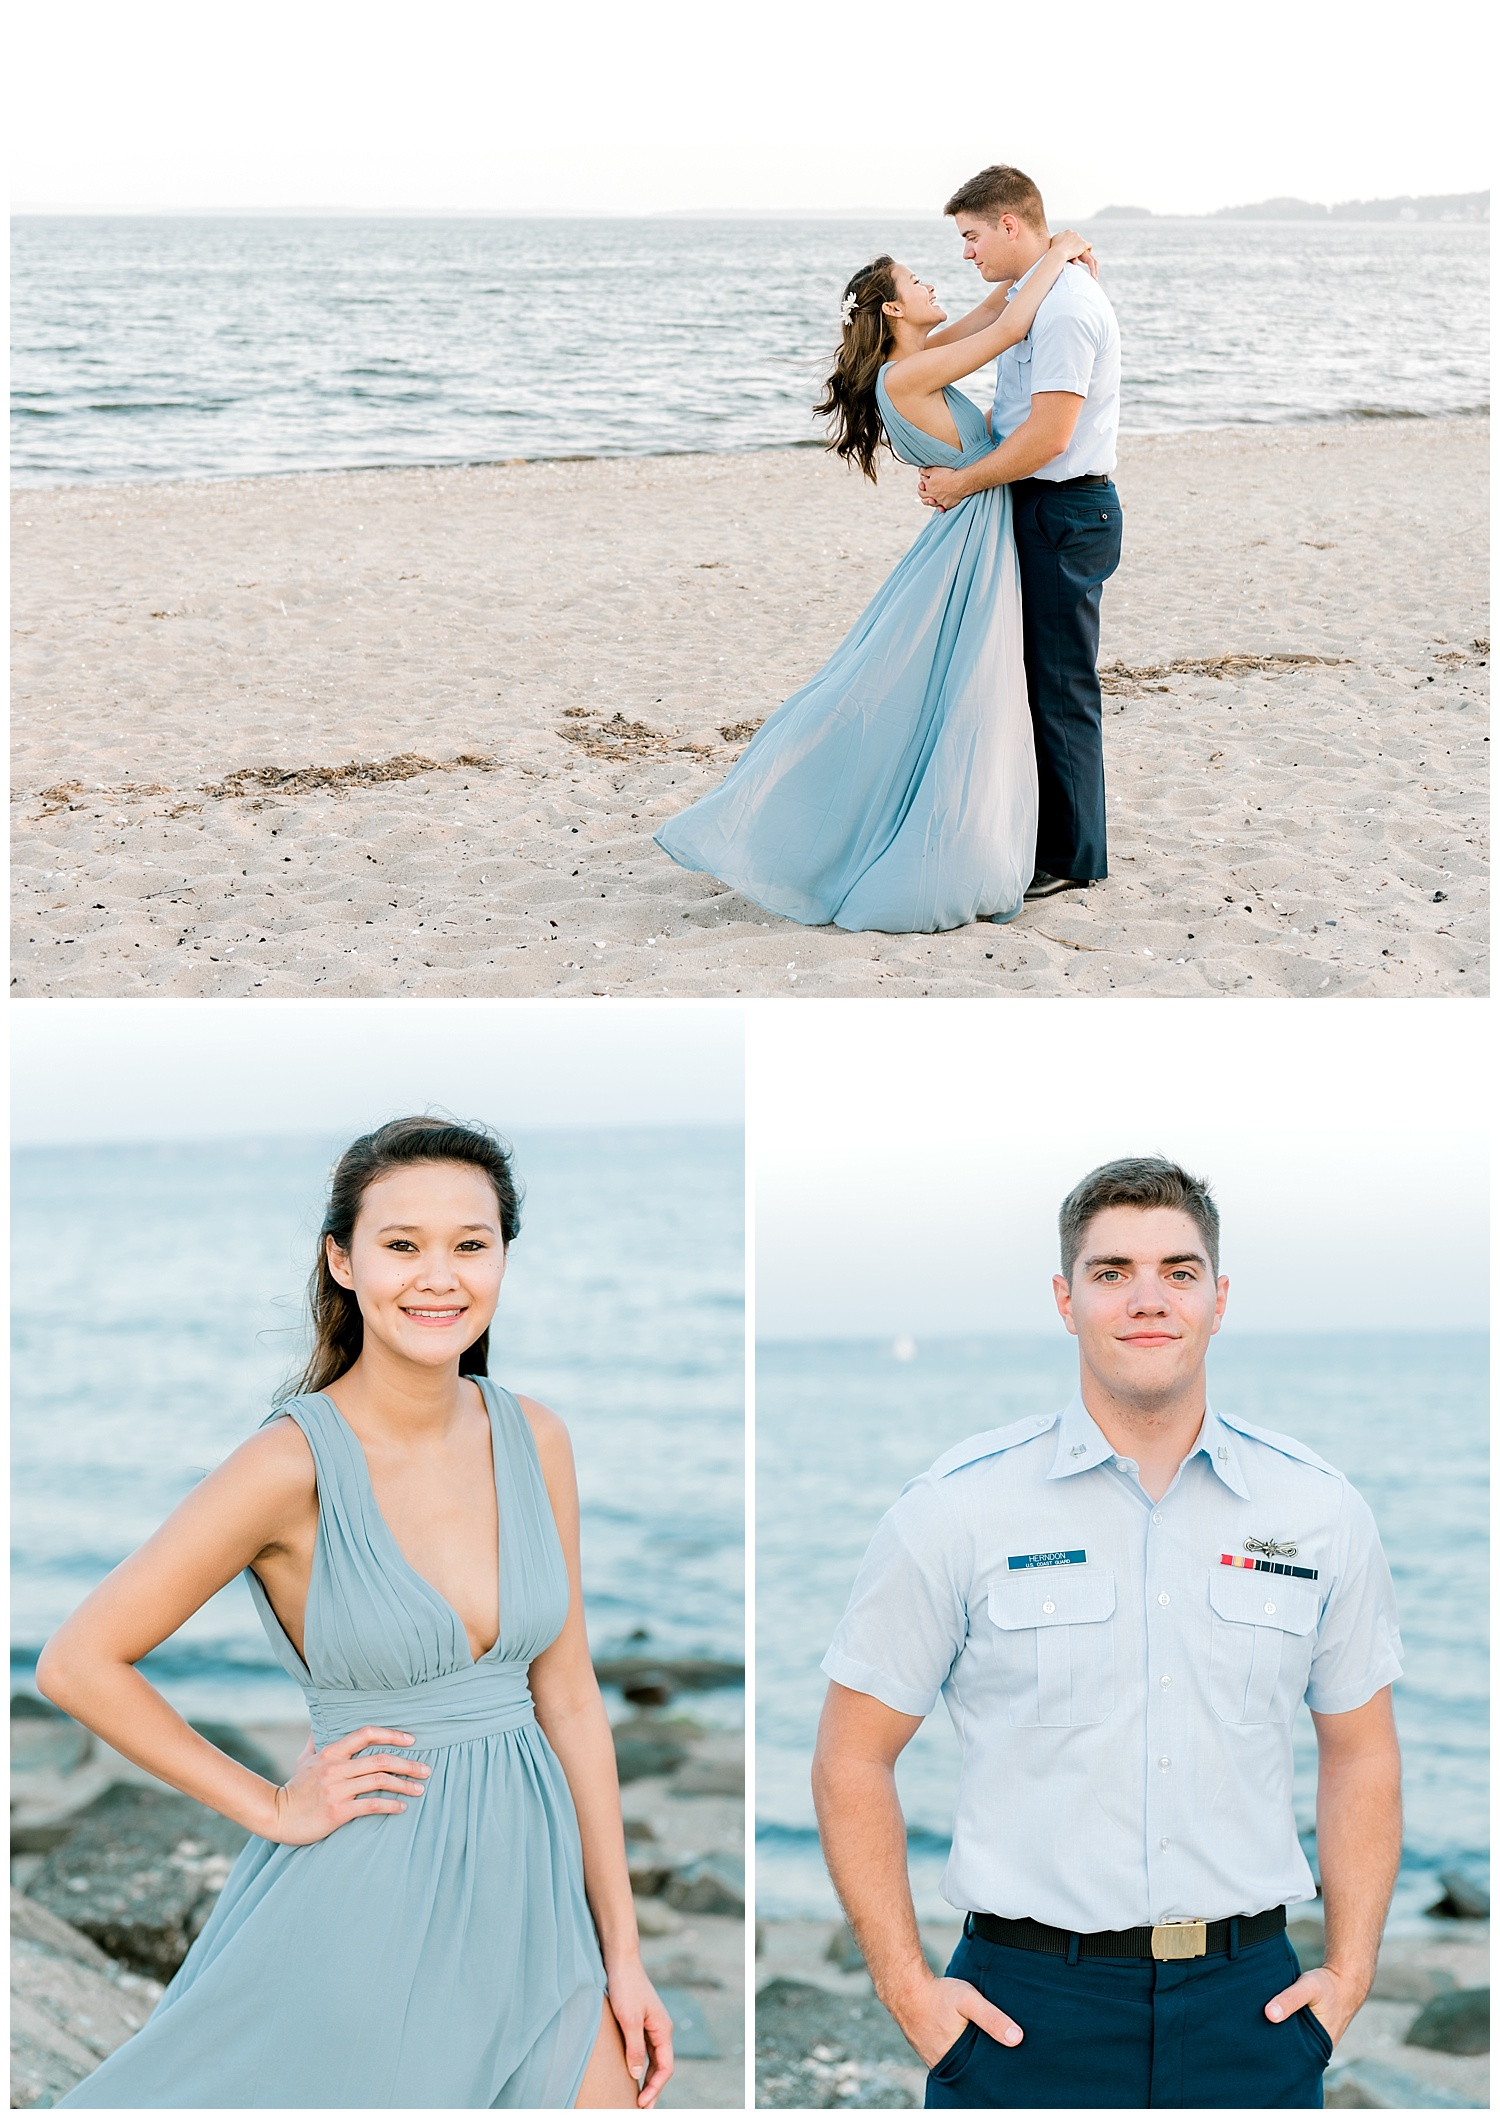 august18-rhode-island-engagement-photography-field-couples-portraits-beach-warwick-RI-14.jpg